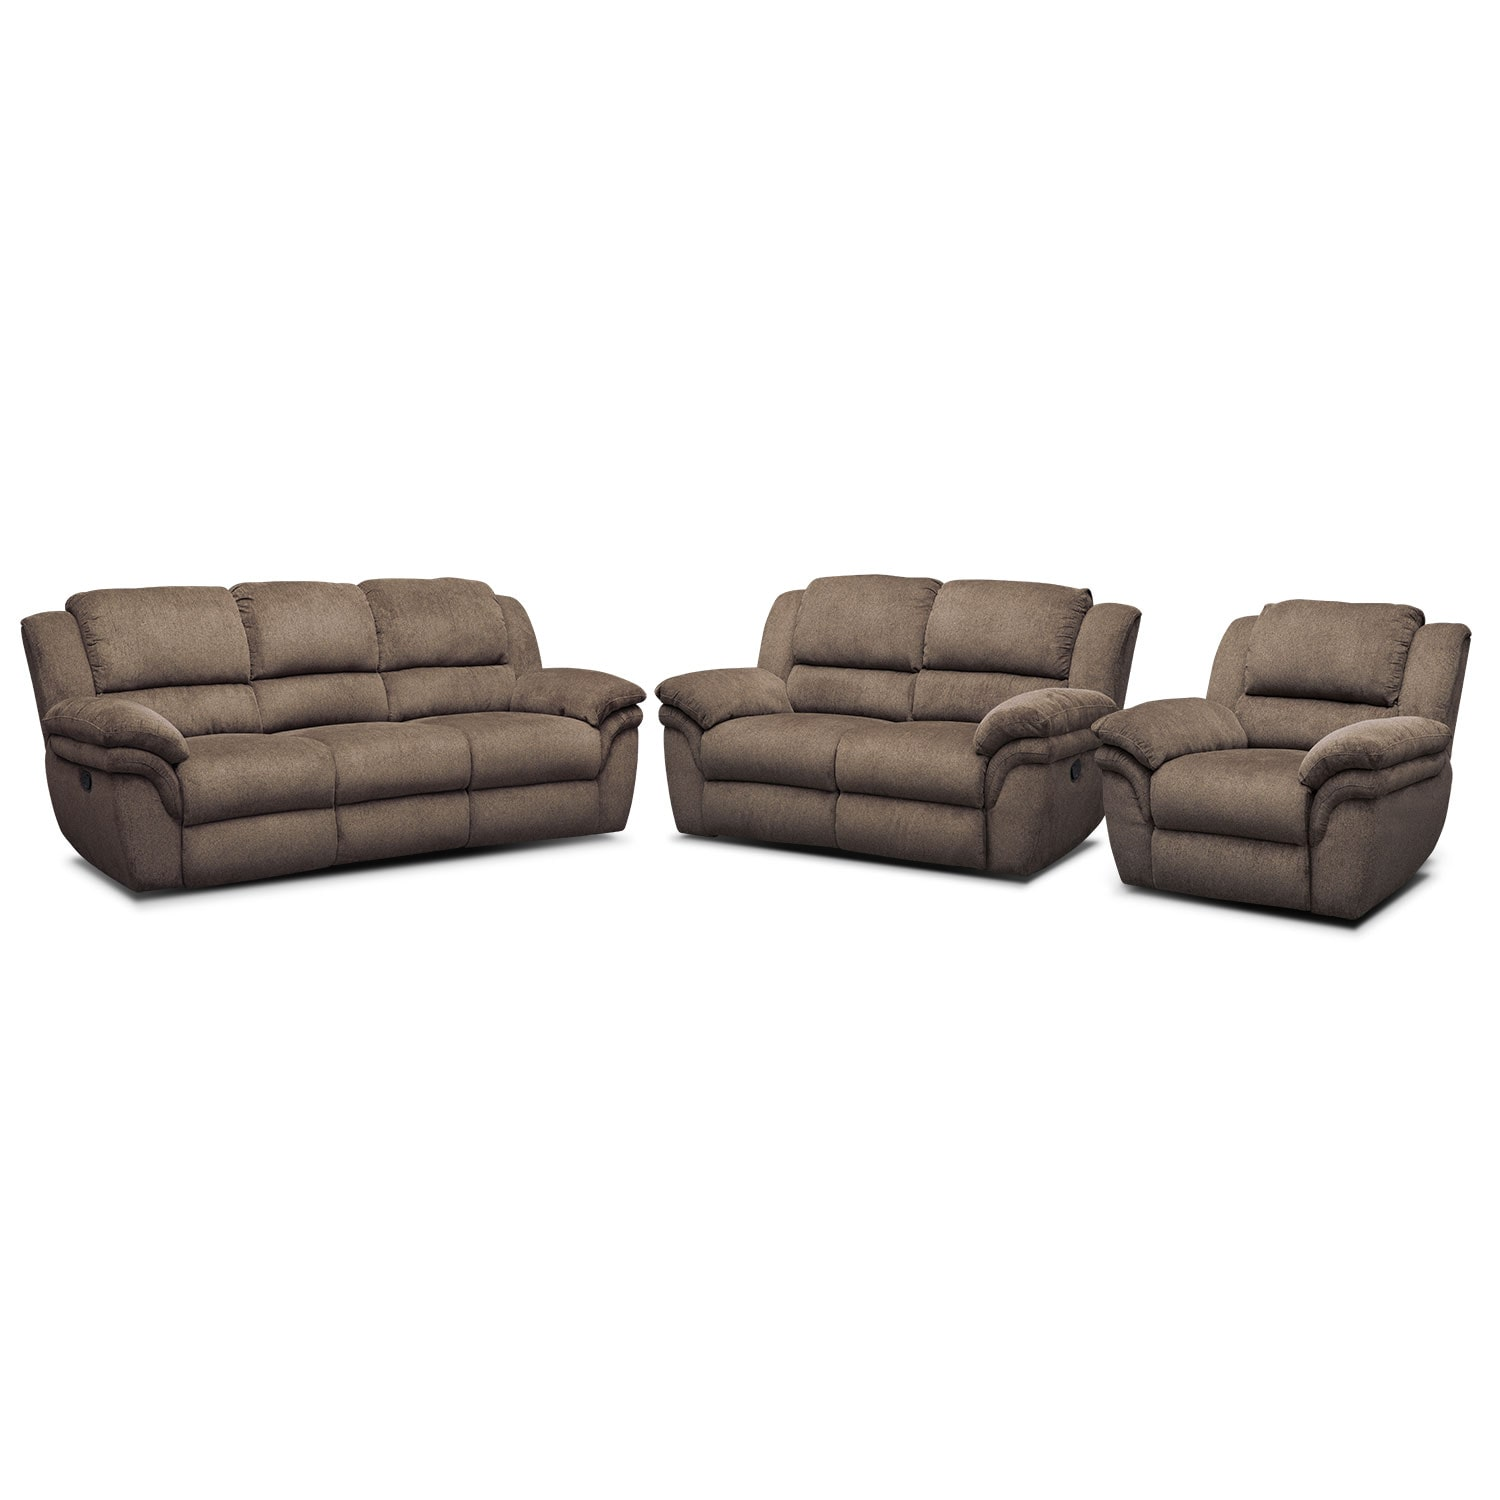 ... Loveseat and Recliner Set -. Hover to zoom  sc 1 st  Value City Furniture & Aldo Manual Dual-Reclining Sofa Loveseat and Recliner Set - Mocha ... islam-shia.org